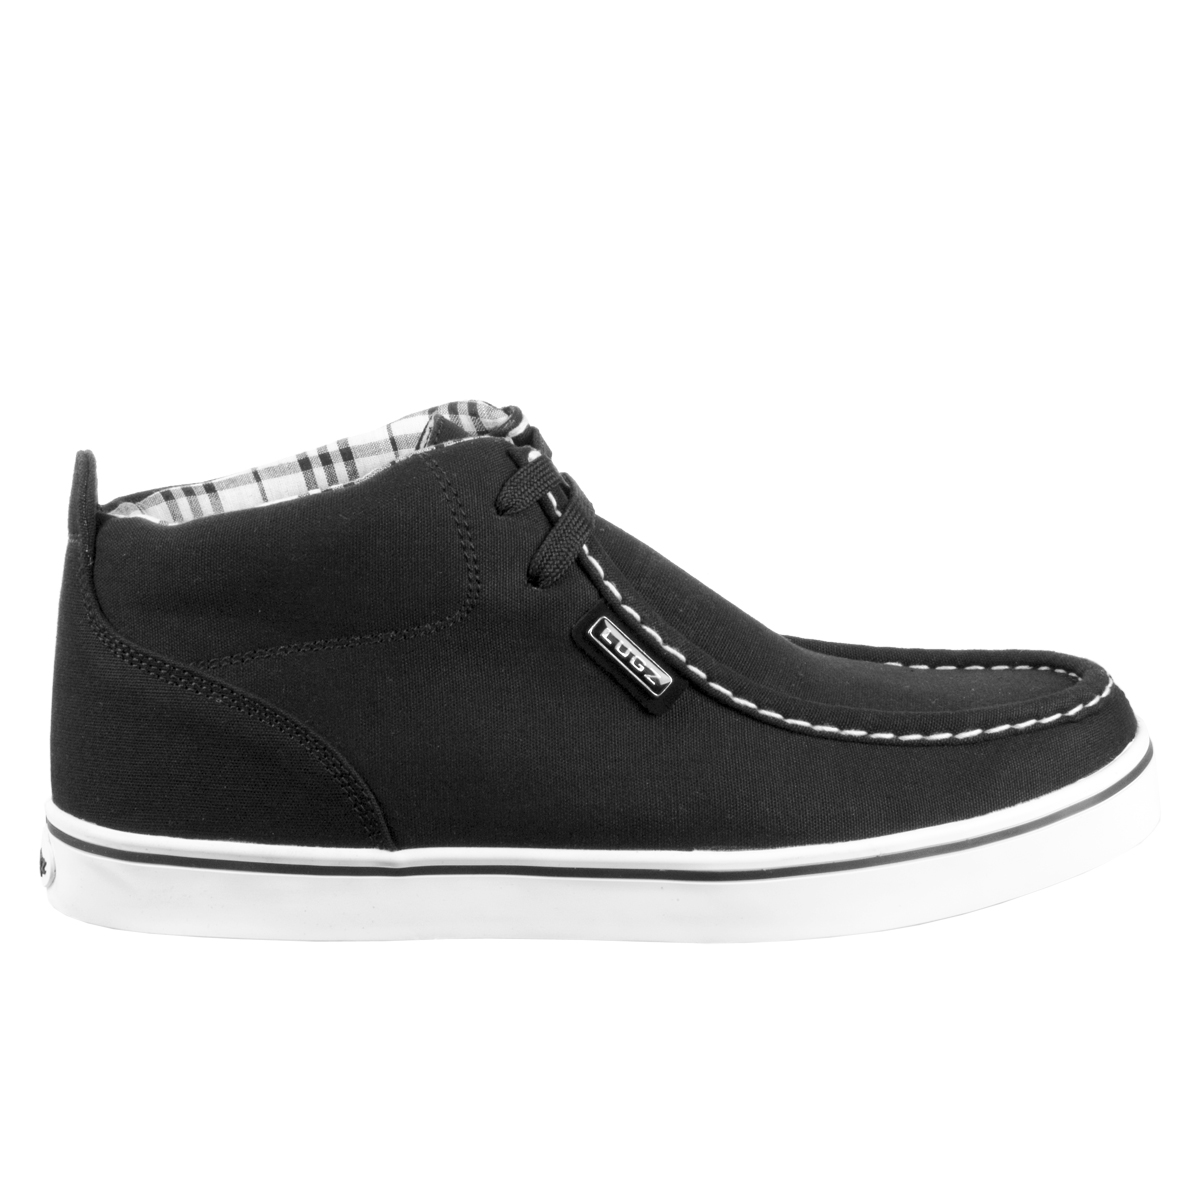 tambee lugz strider mens shoe black white plaid